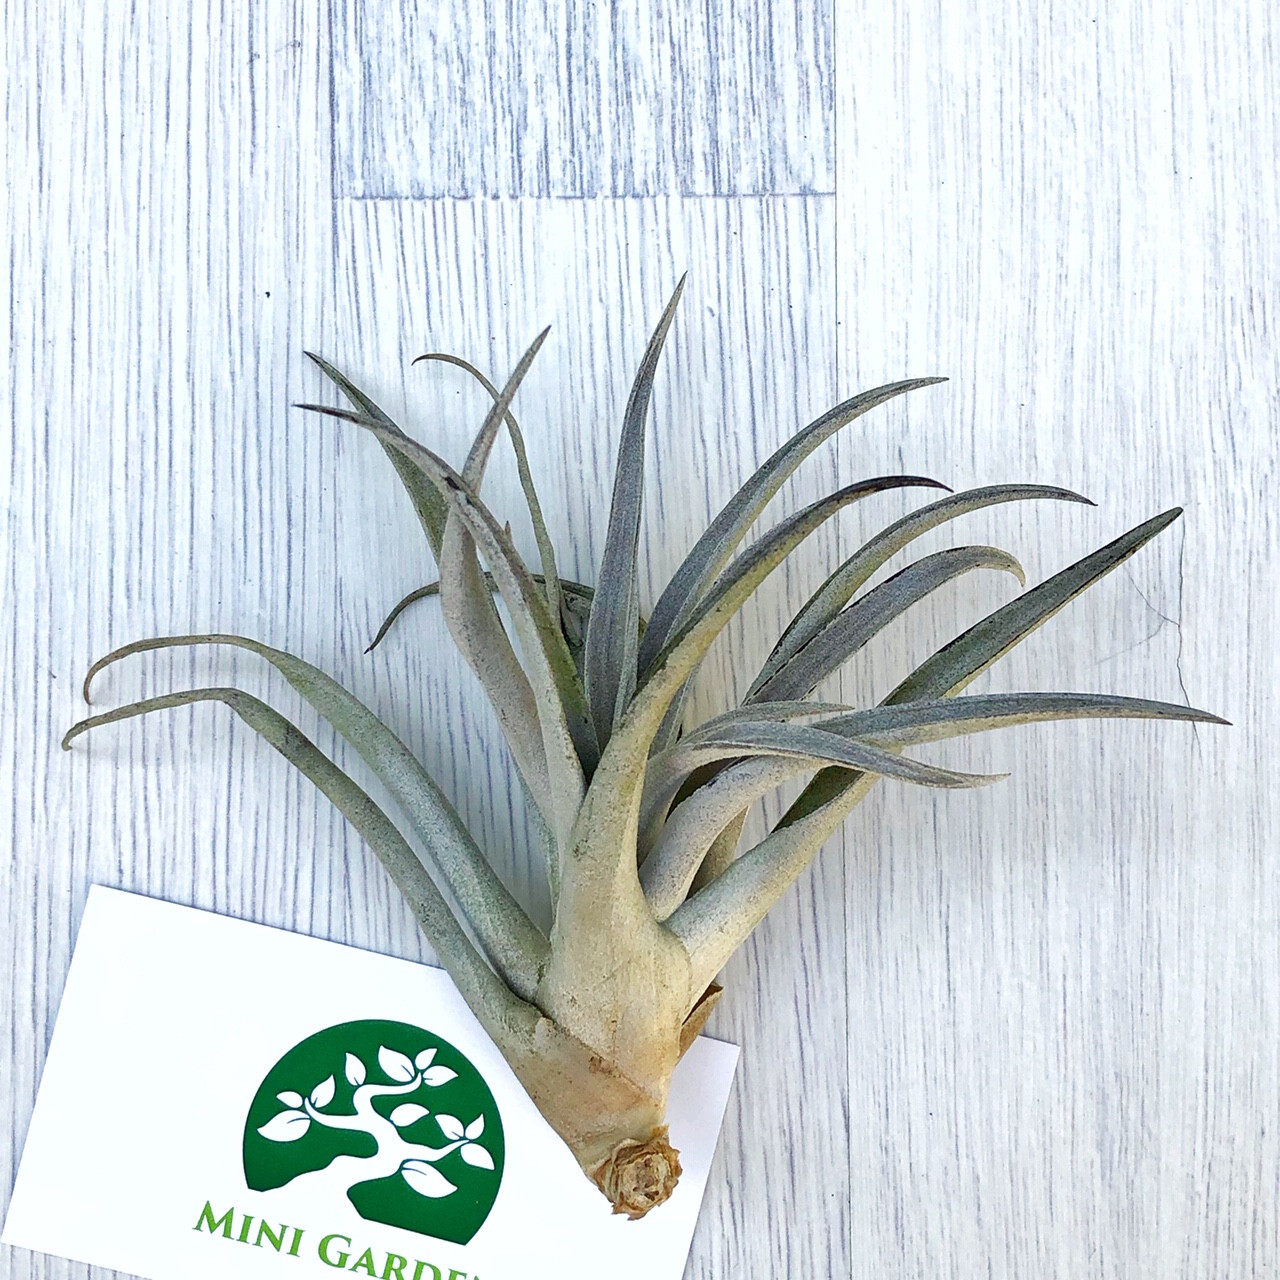 Тилландсия атмосферная Хариси (Tillandsia Harrisii)